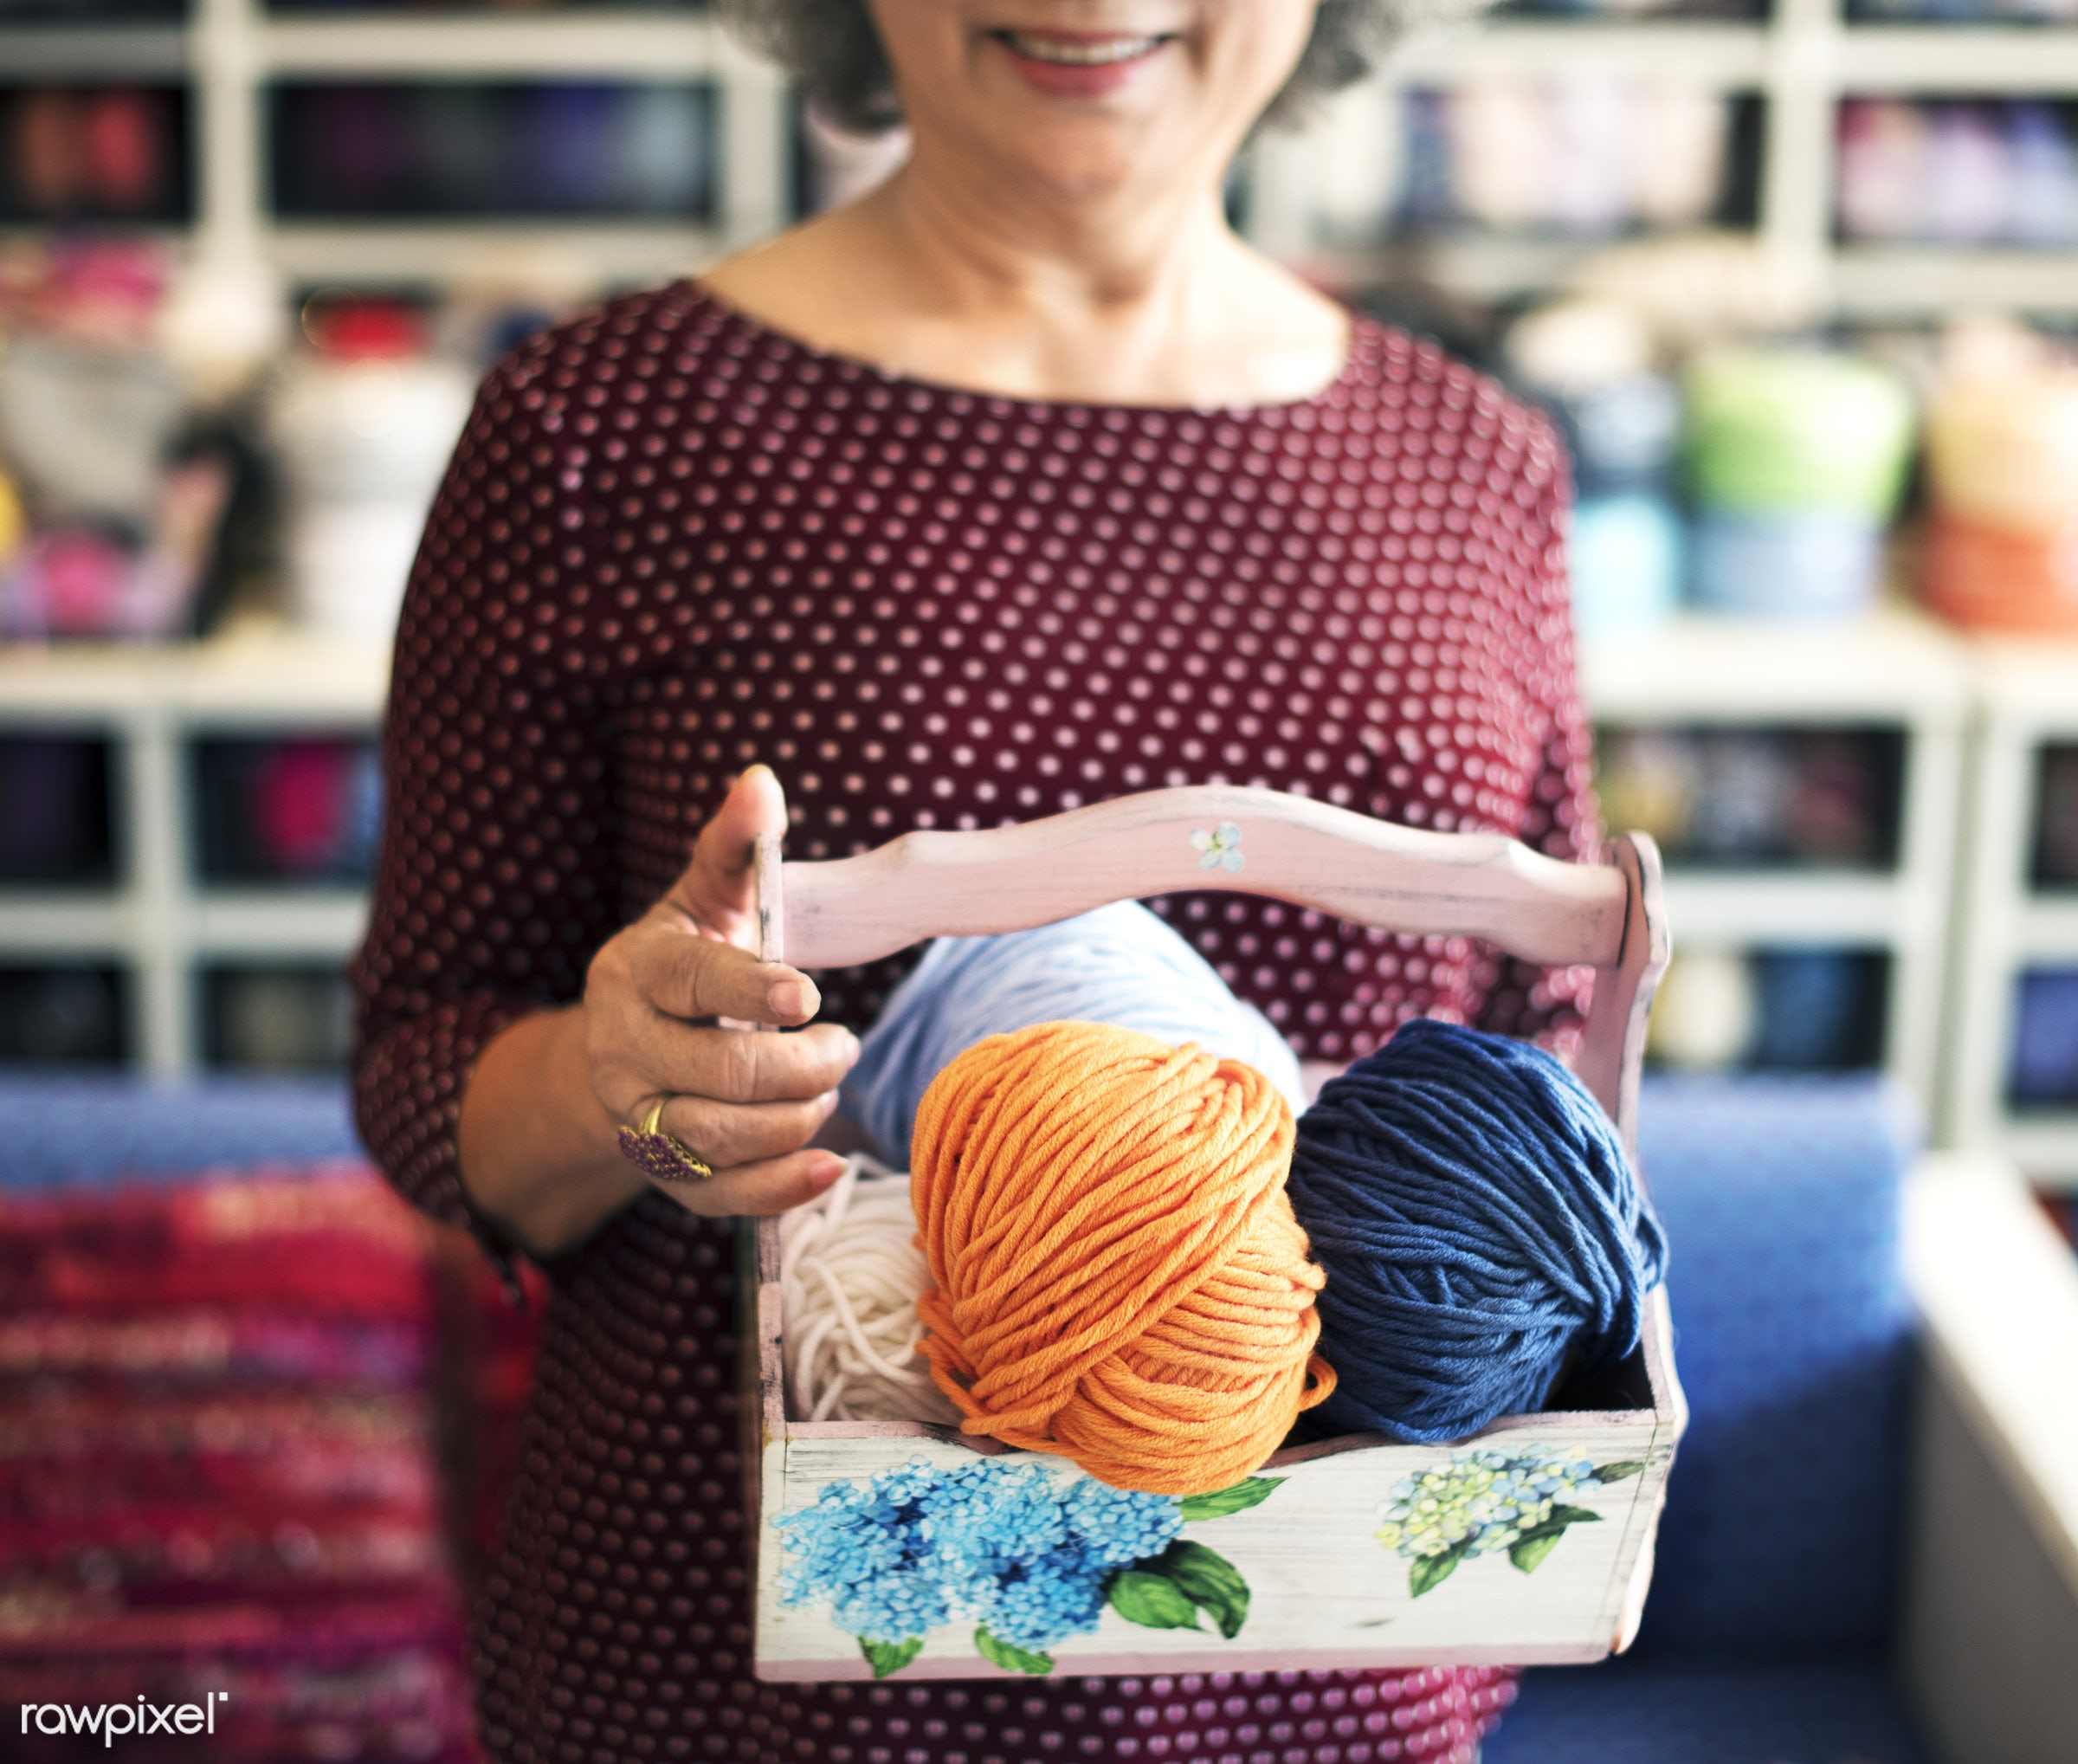 Lifestyle of a senior Asian woman - craft, senior, work, handmade, activity, adult, asian, cafe, casual, cheerful, close up...